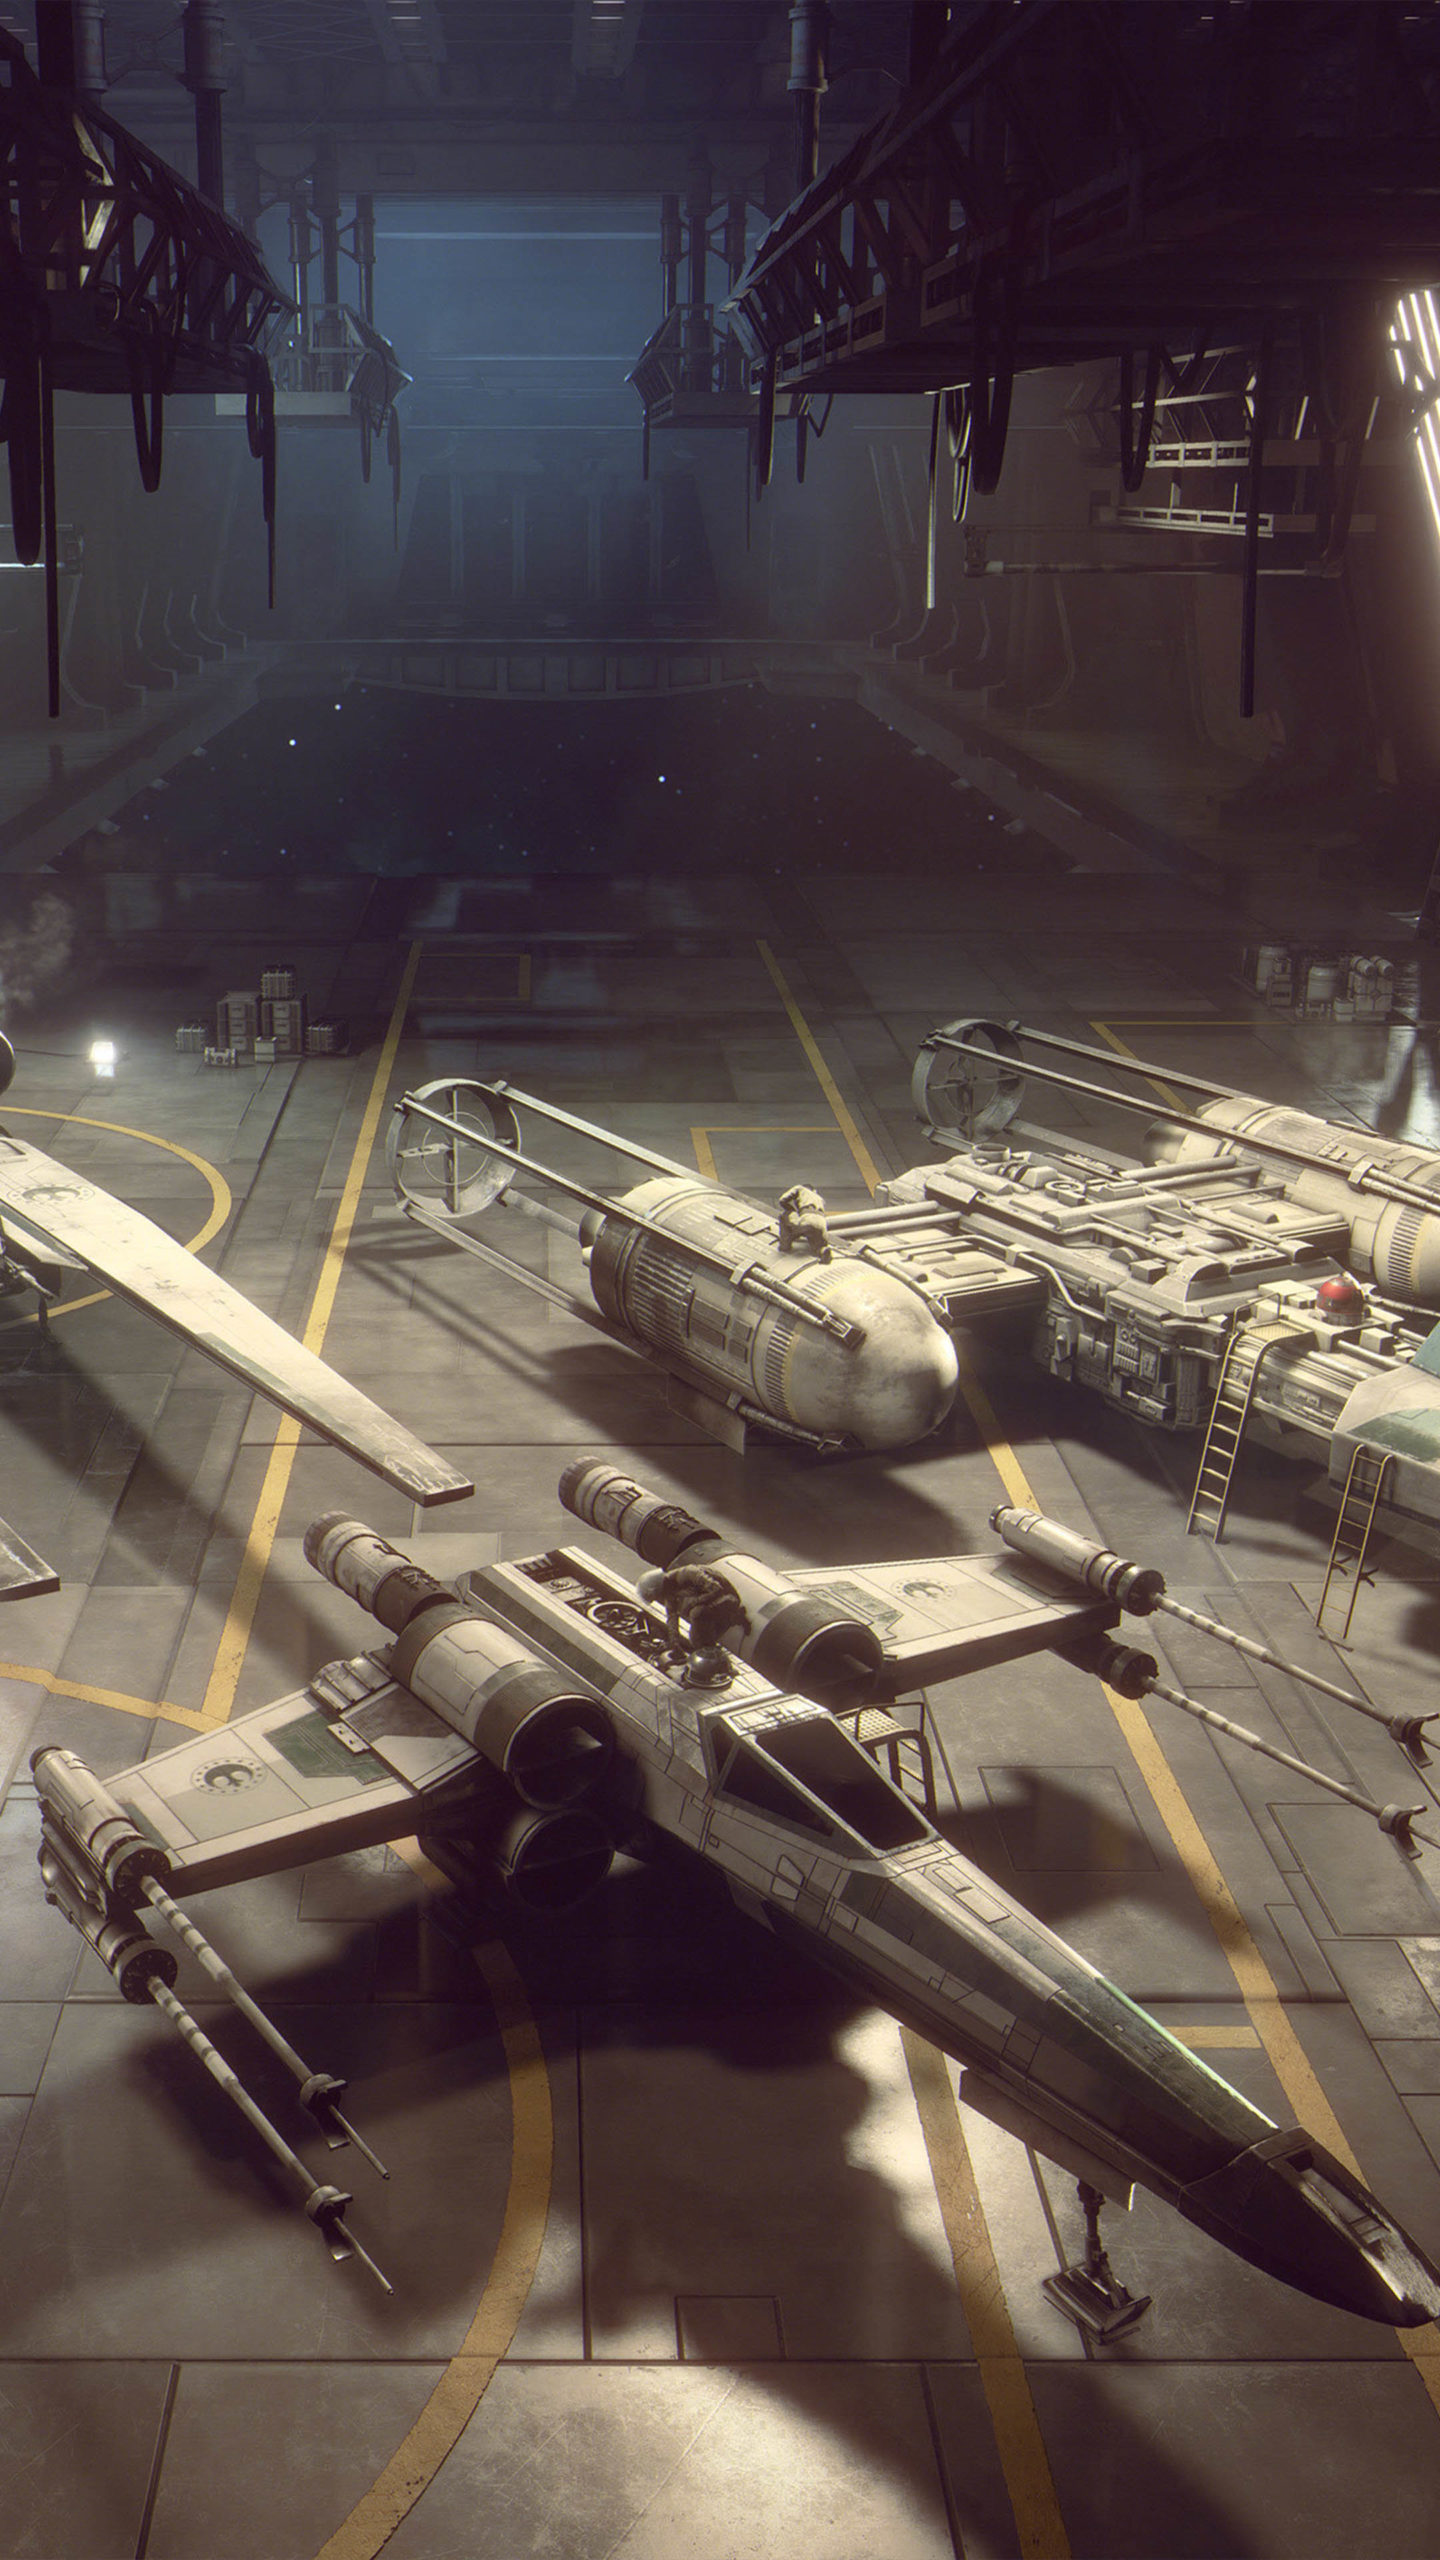 Spaceships Star Wars Squadrons 4K Ultra HD Mobile Wallpaper scaled